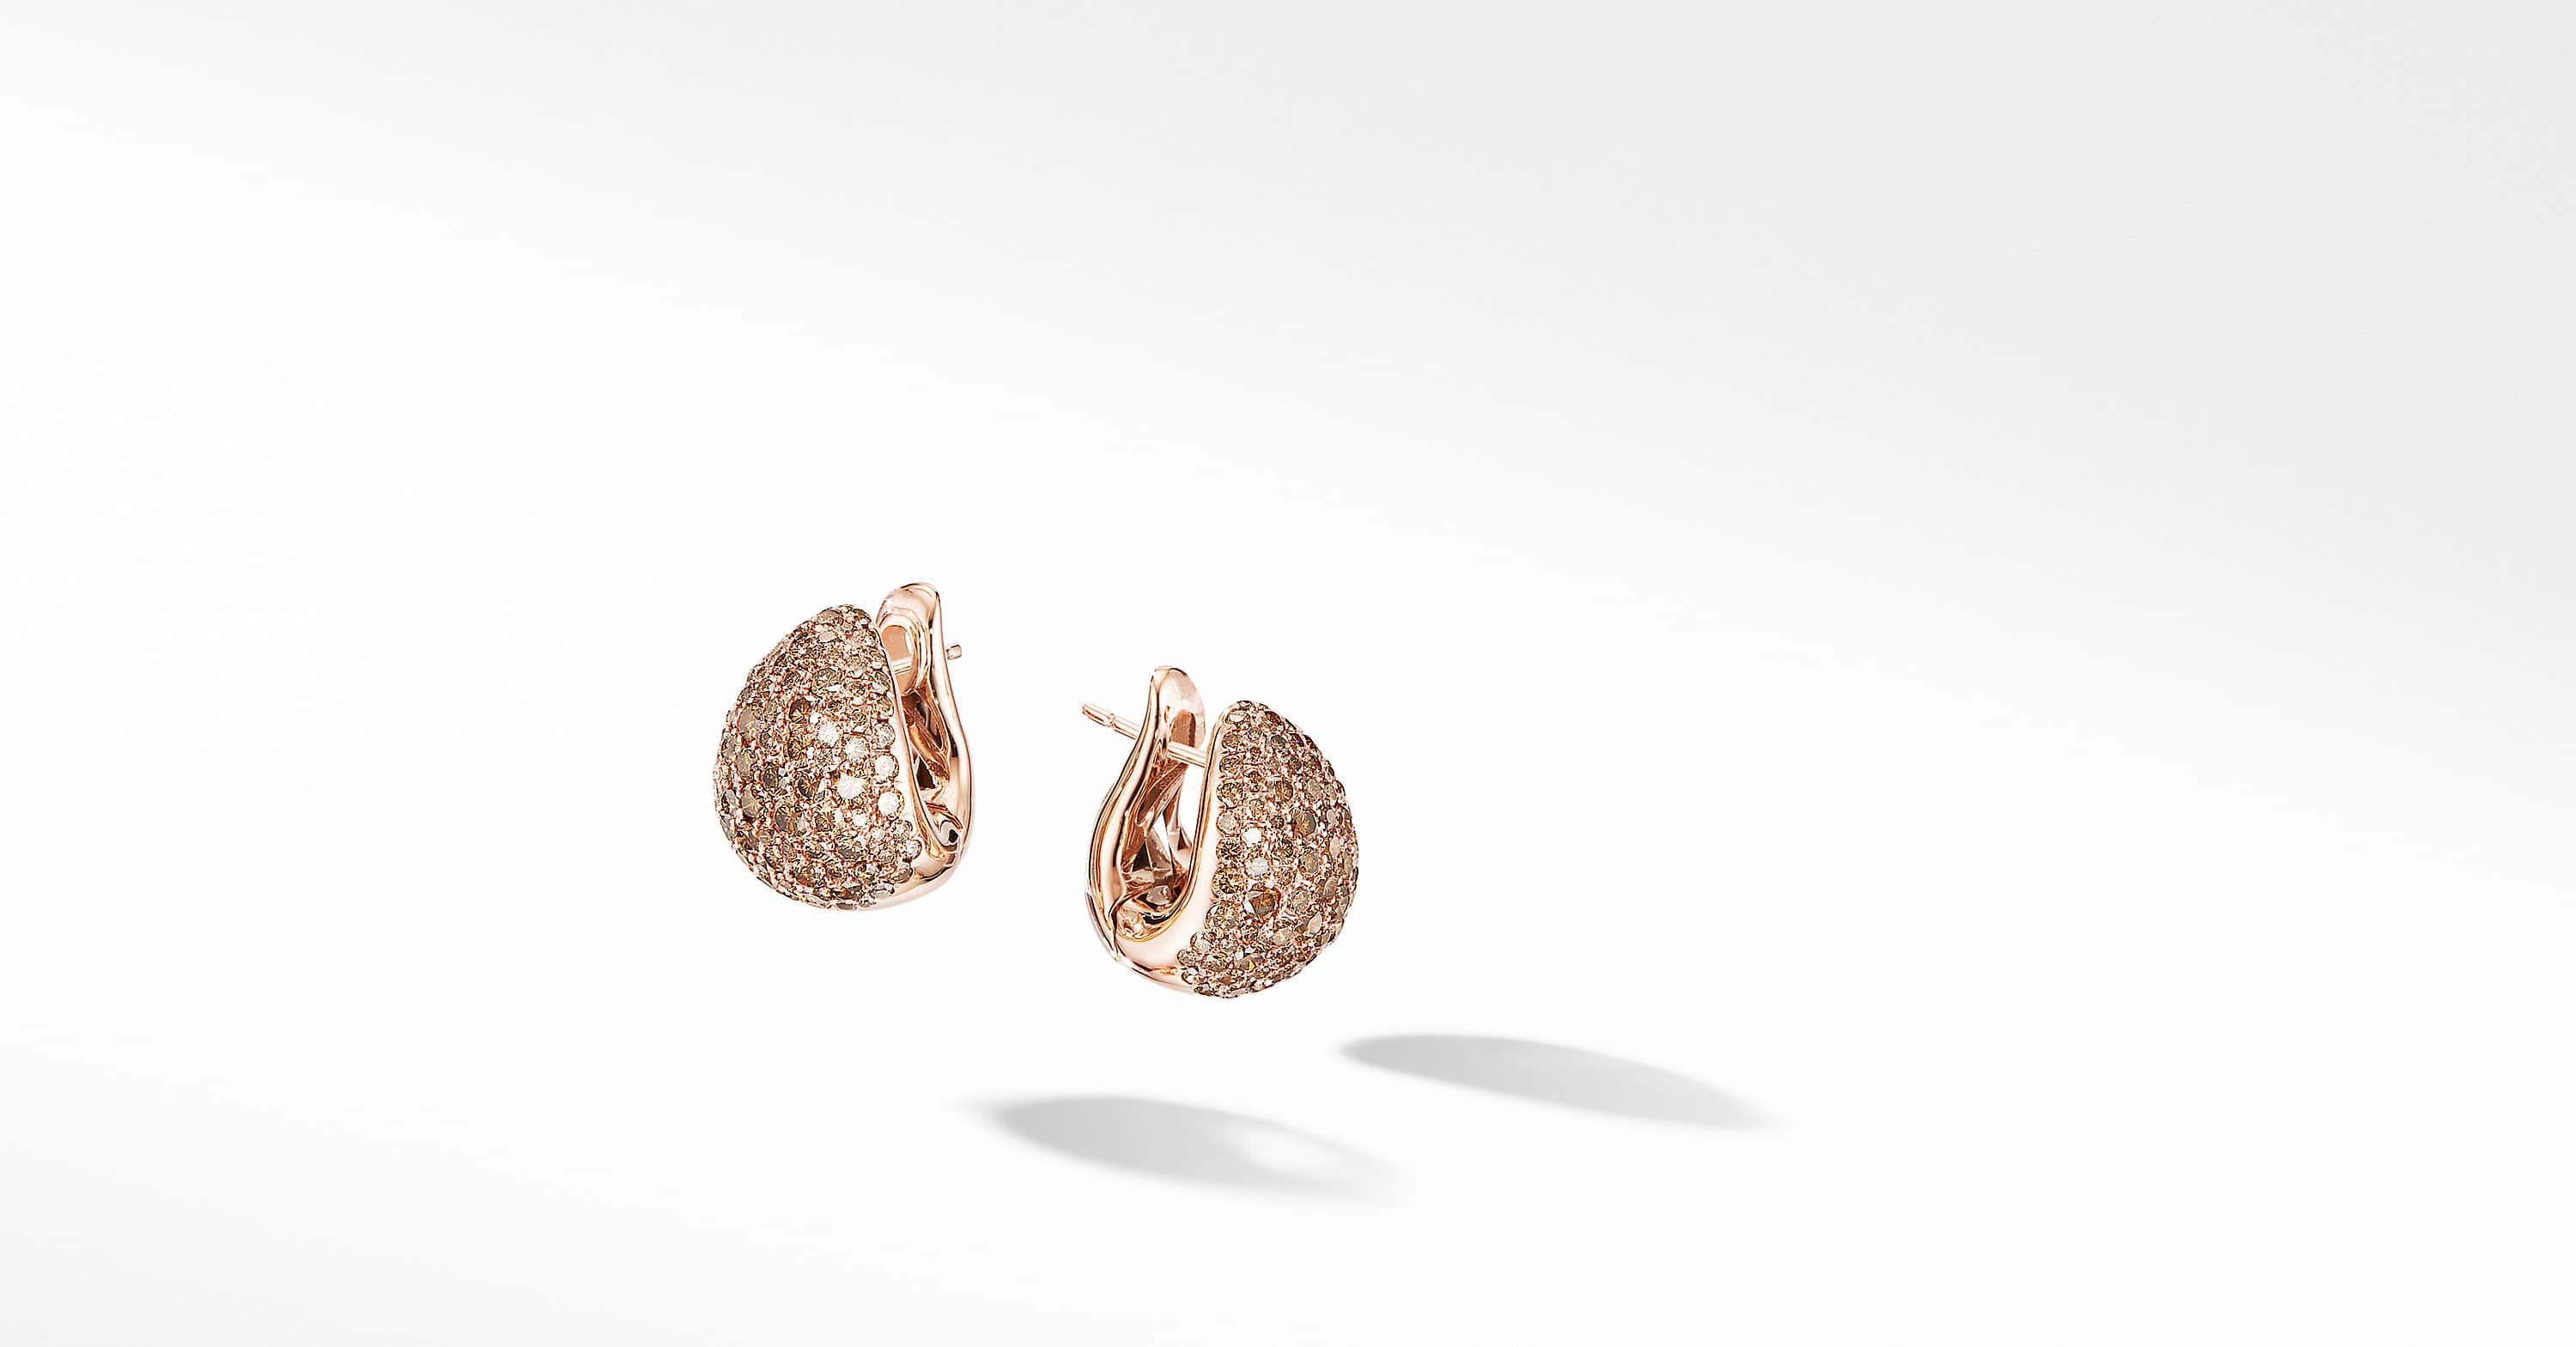 Pear Huggie Hoop Earrings in 18K Rose Gold with Pavé